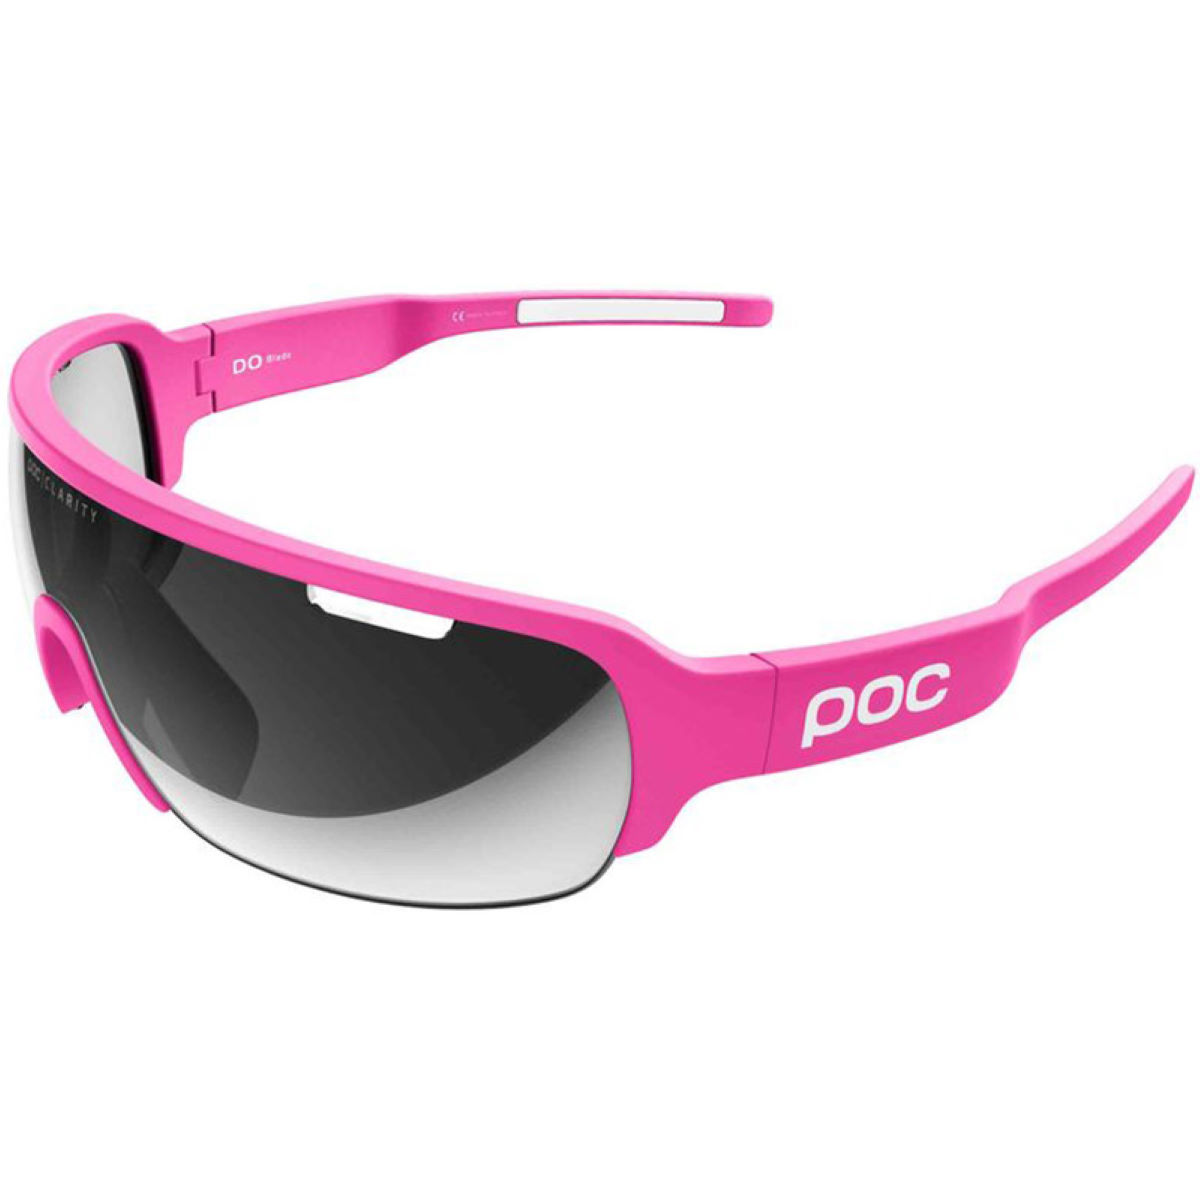 POC POC DO Half Blade EF Sunglasses   Sunglasses